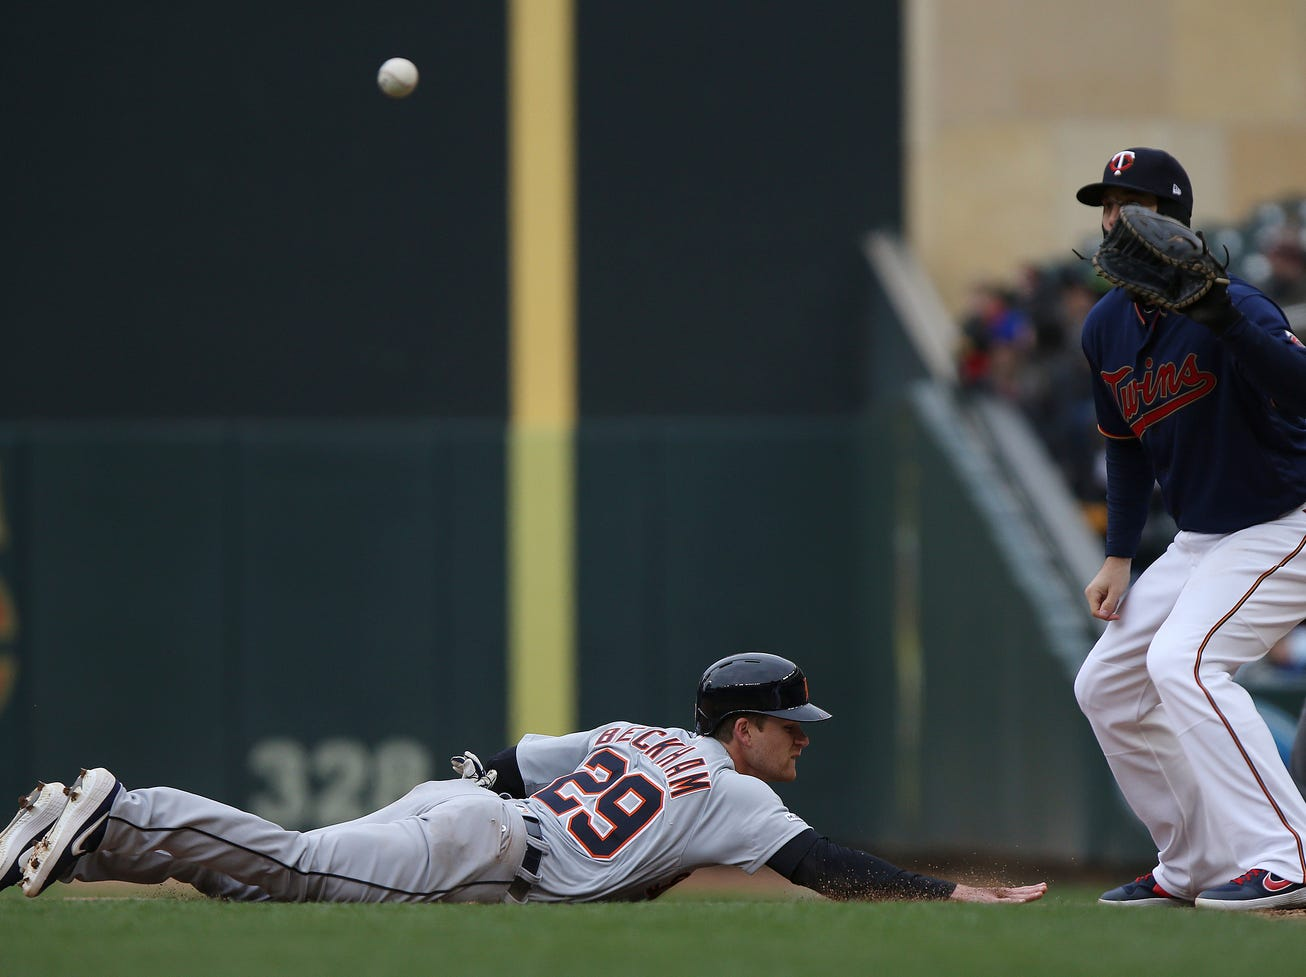 Detroit Tigers' Gordon Beckham slides back to first base against Minnesota Twins' C.J. Cron in the ninth inning.